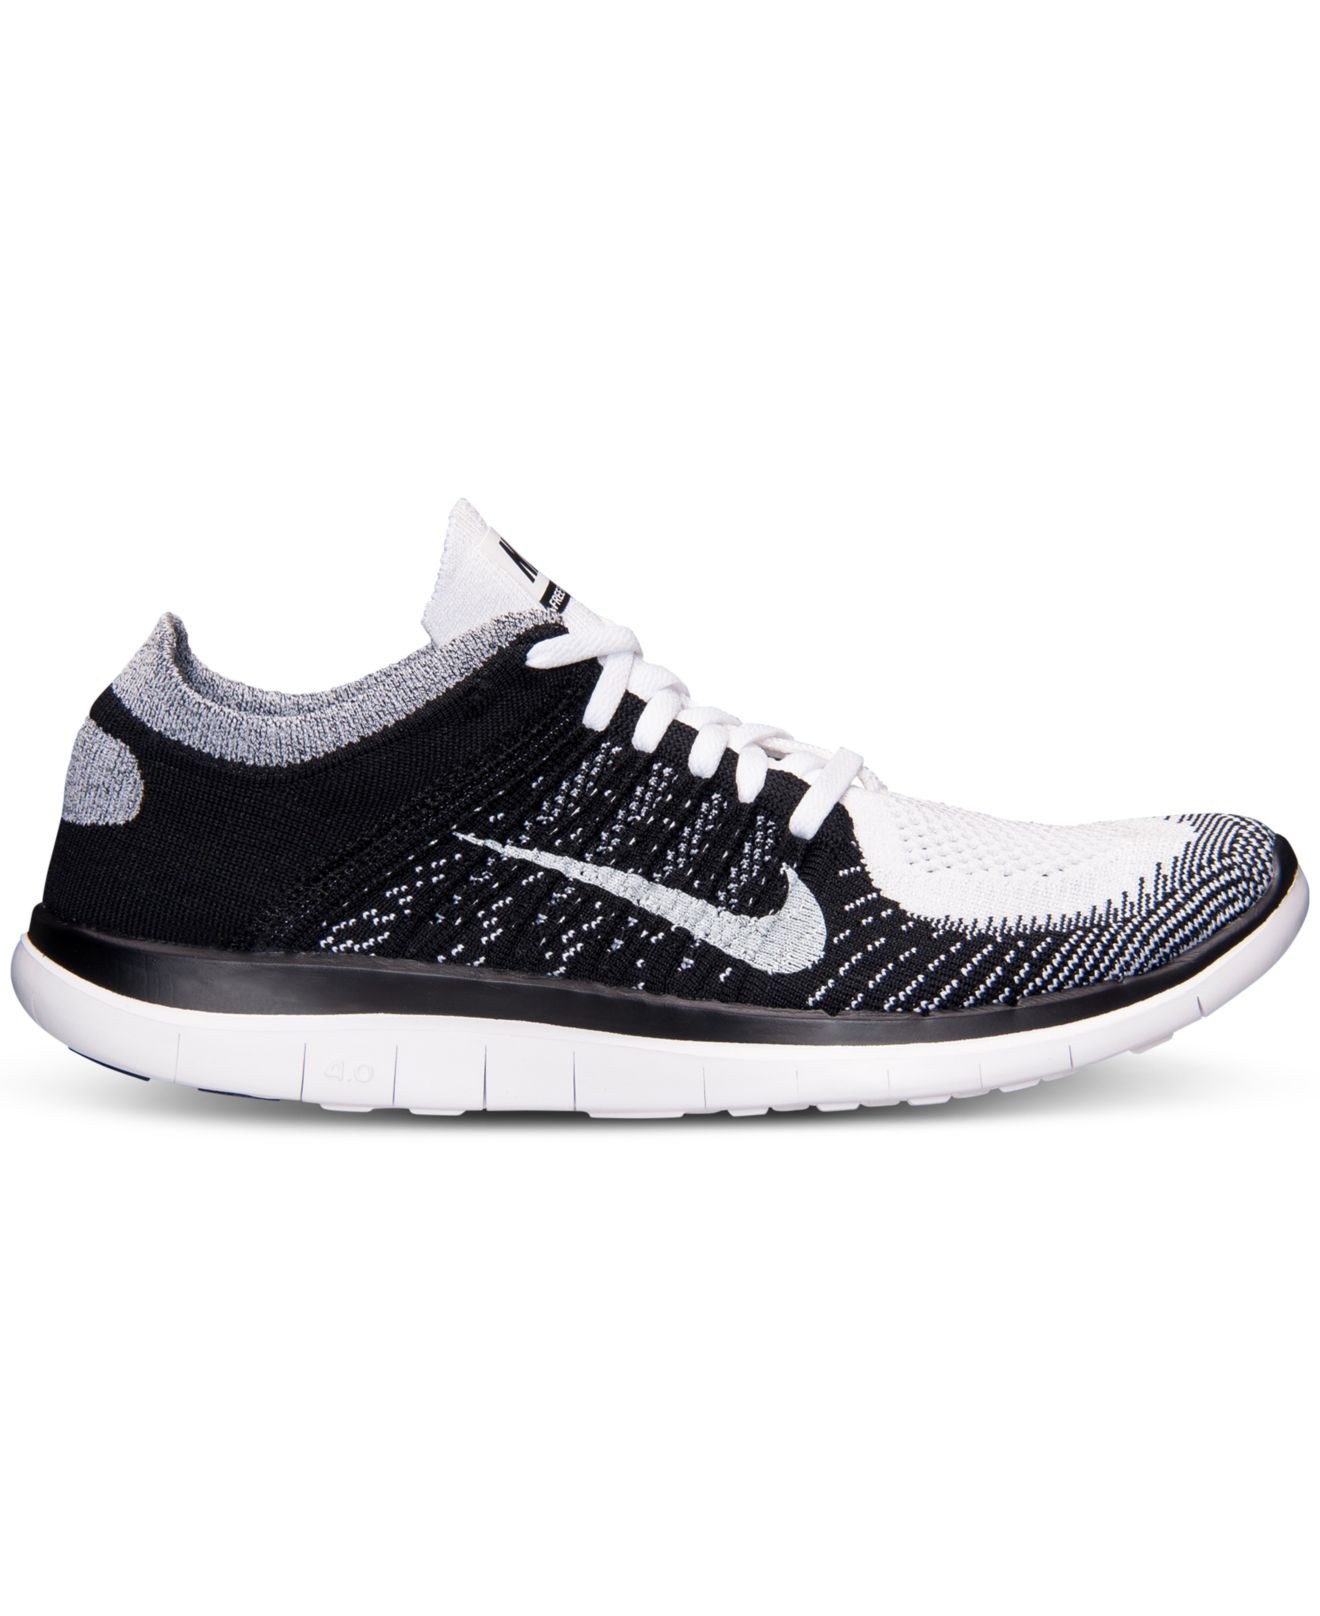 check out ad4ad 2d3ca Nike Free Flyknit Finish Line